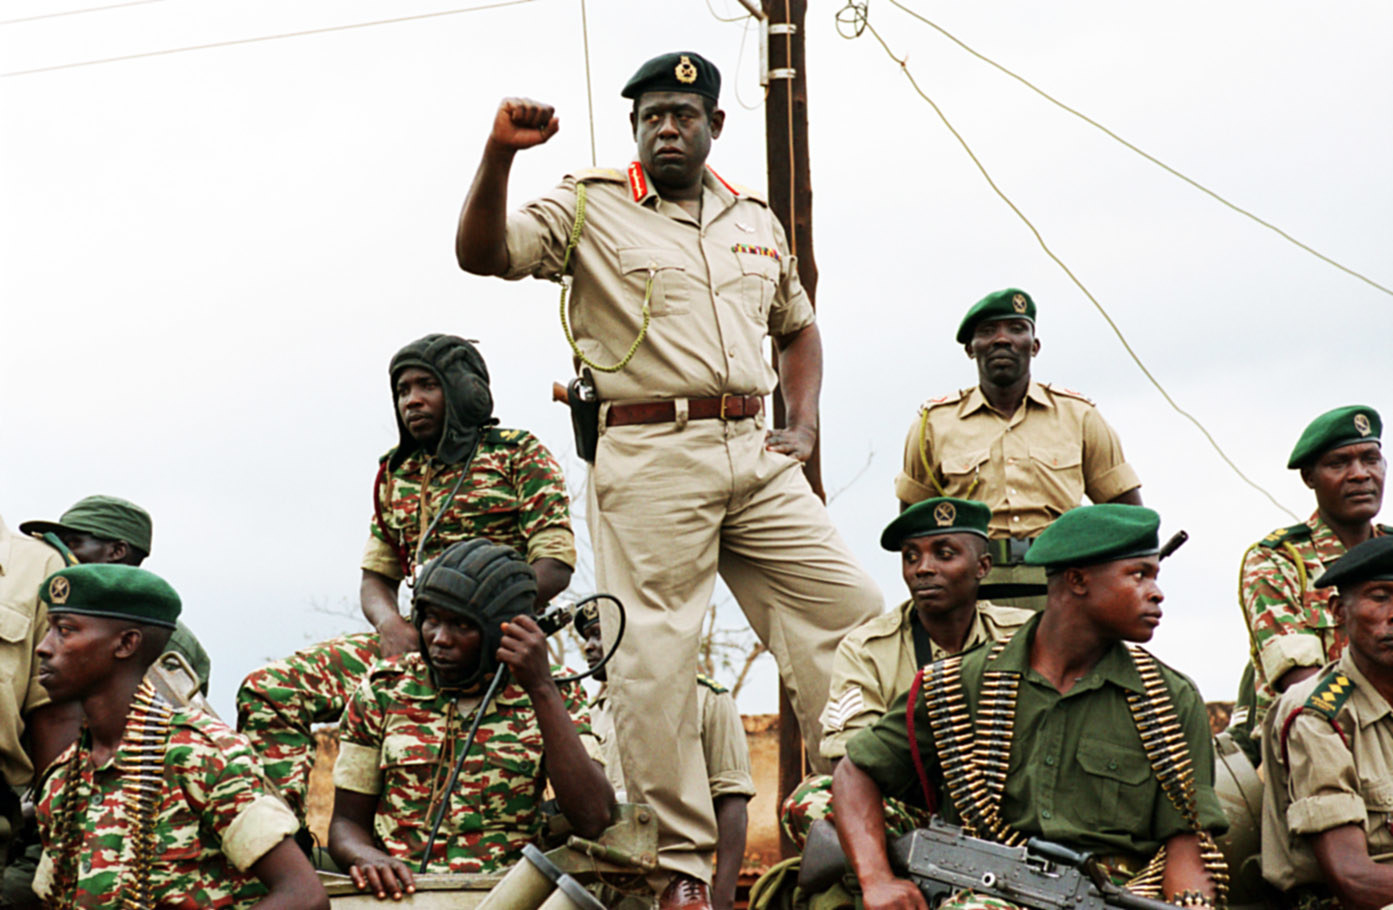 Forest Whitaker as Idi Amin standing among soldiers with his fist in the air